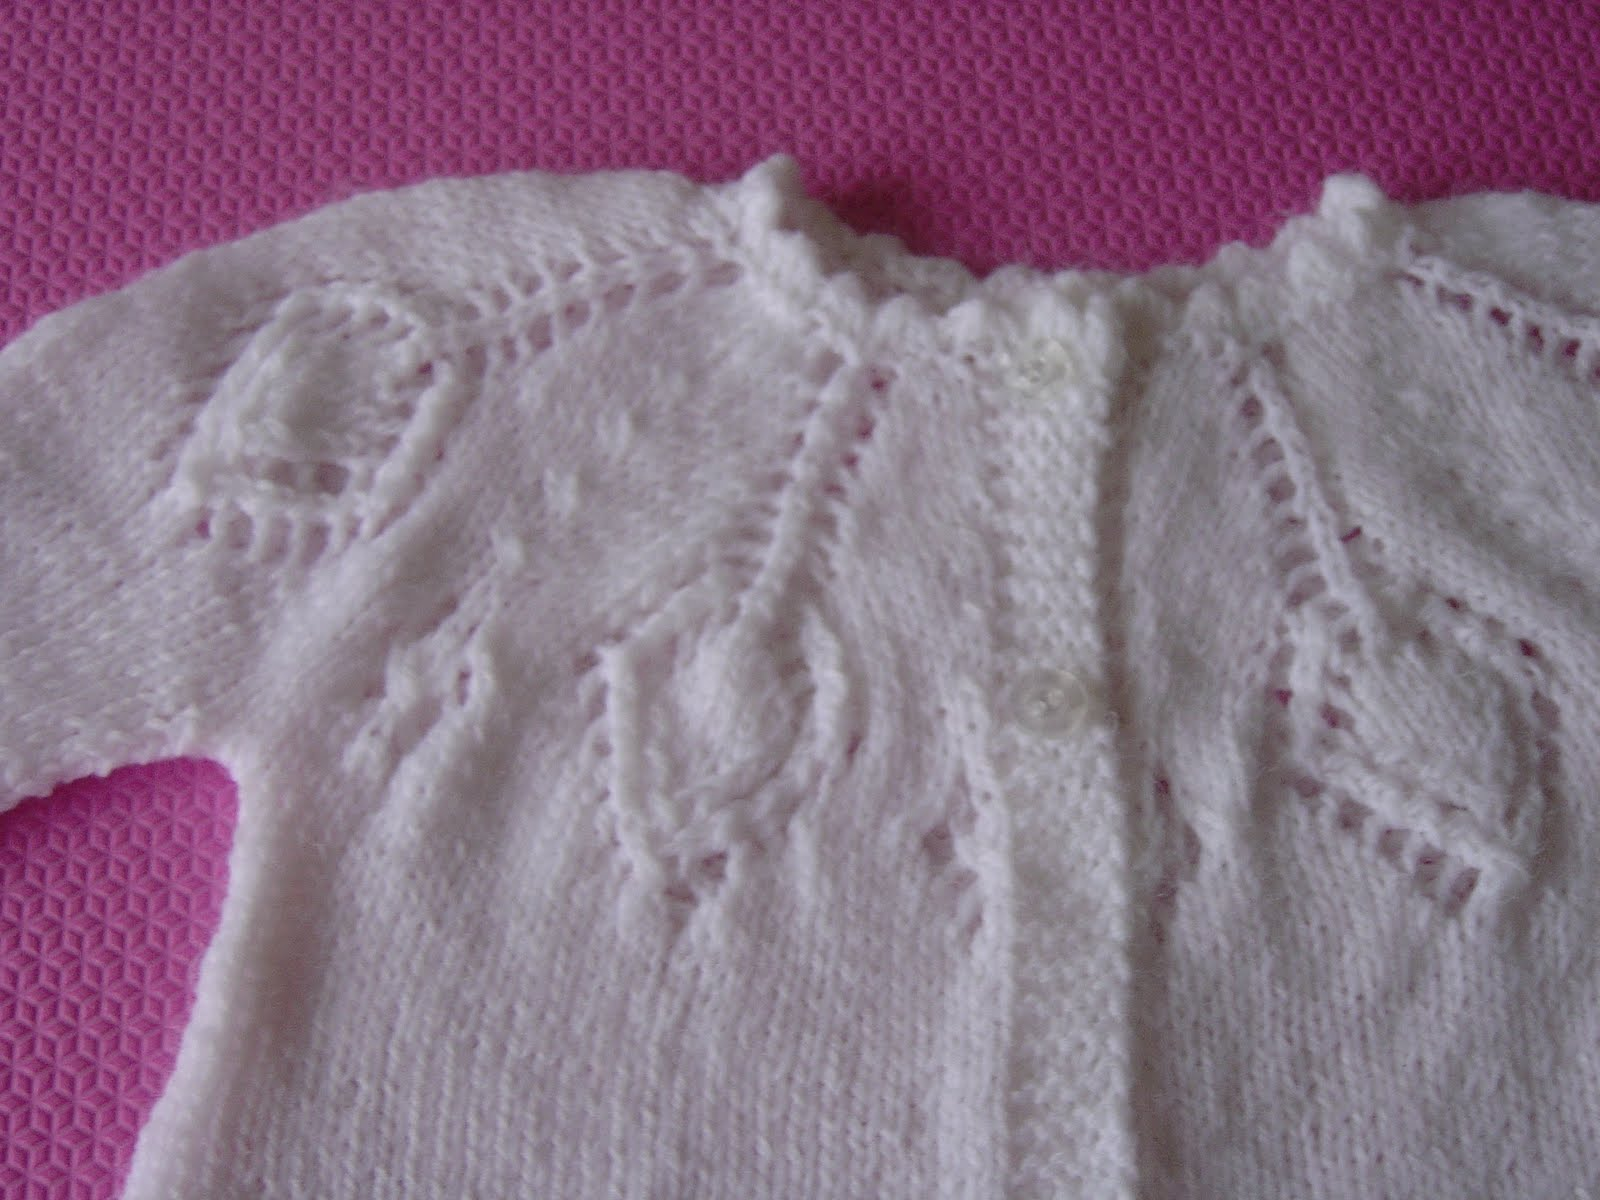 Free Babies Knitting Patterns For Cardigans : free baby knitting patterns - Music Search Engine at Search.com